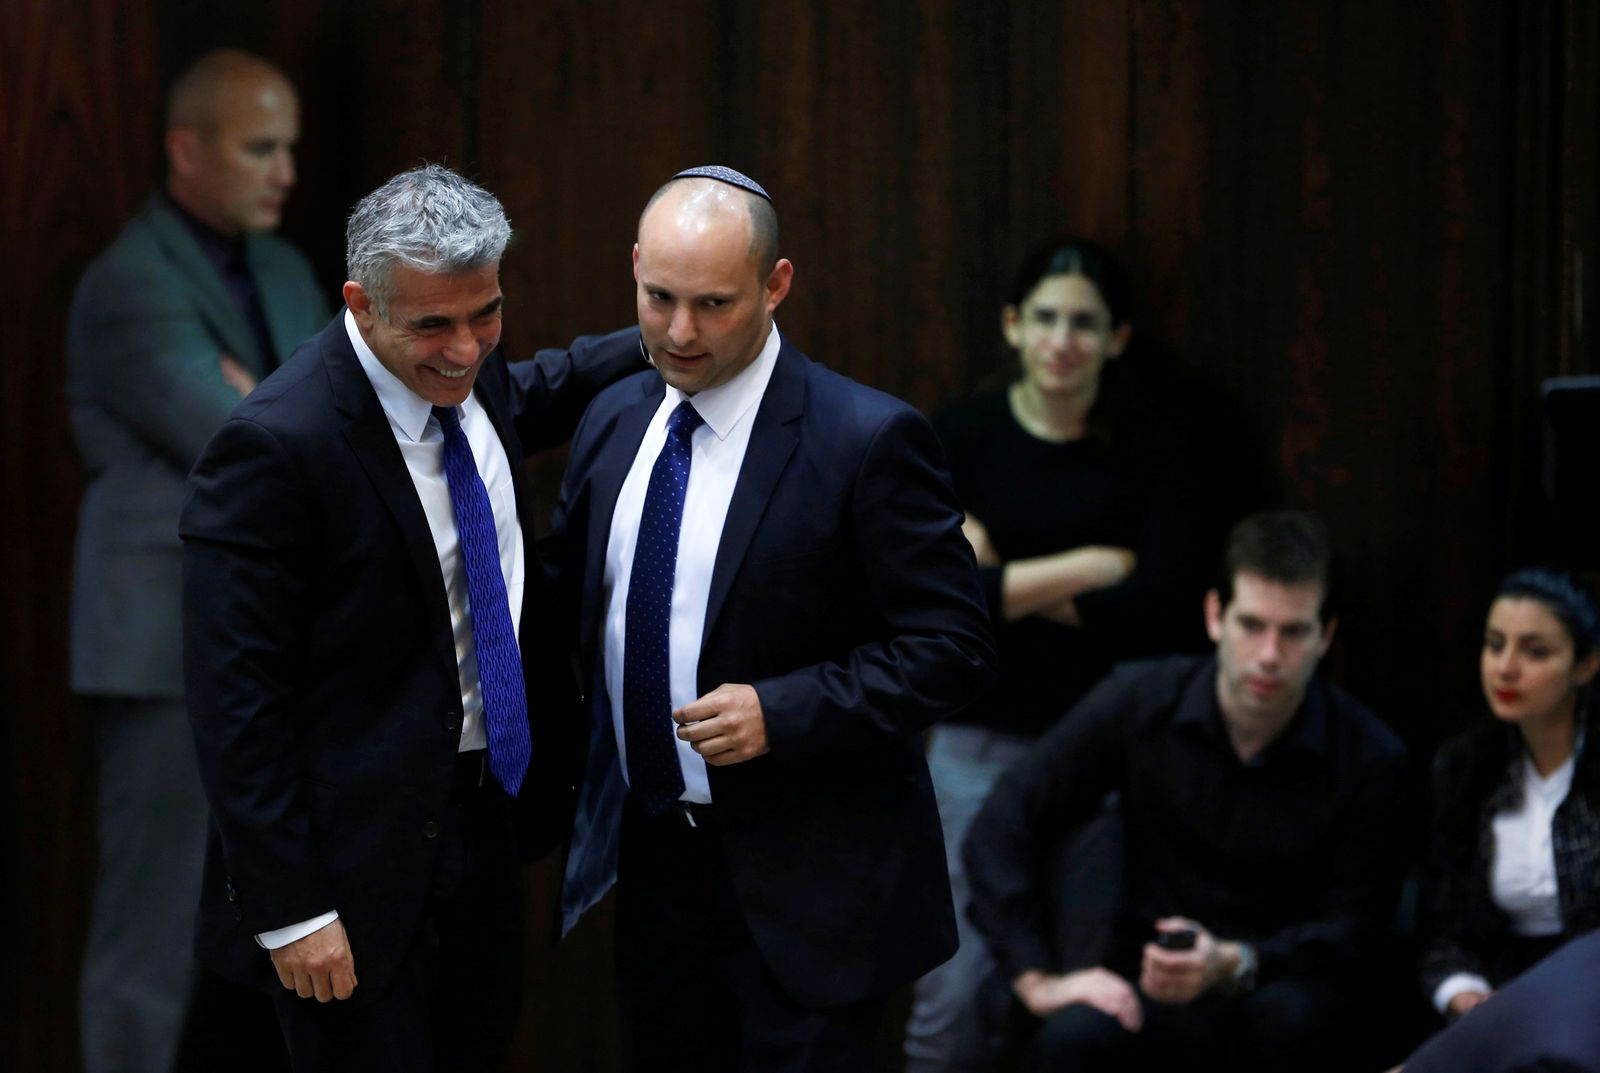 FILE PHOTO: Israel's Finance Minister Lapid and Minister of Economics and Trade Bennett walk together during the swearing-in ceremony at the Israeli Parliament, in Jerusalem